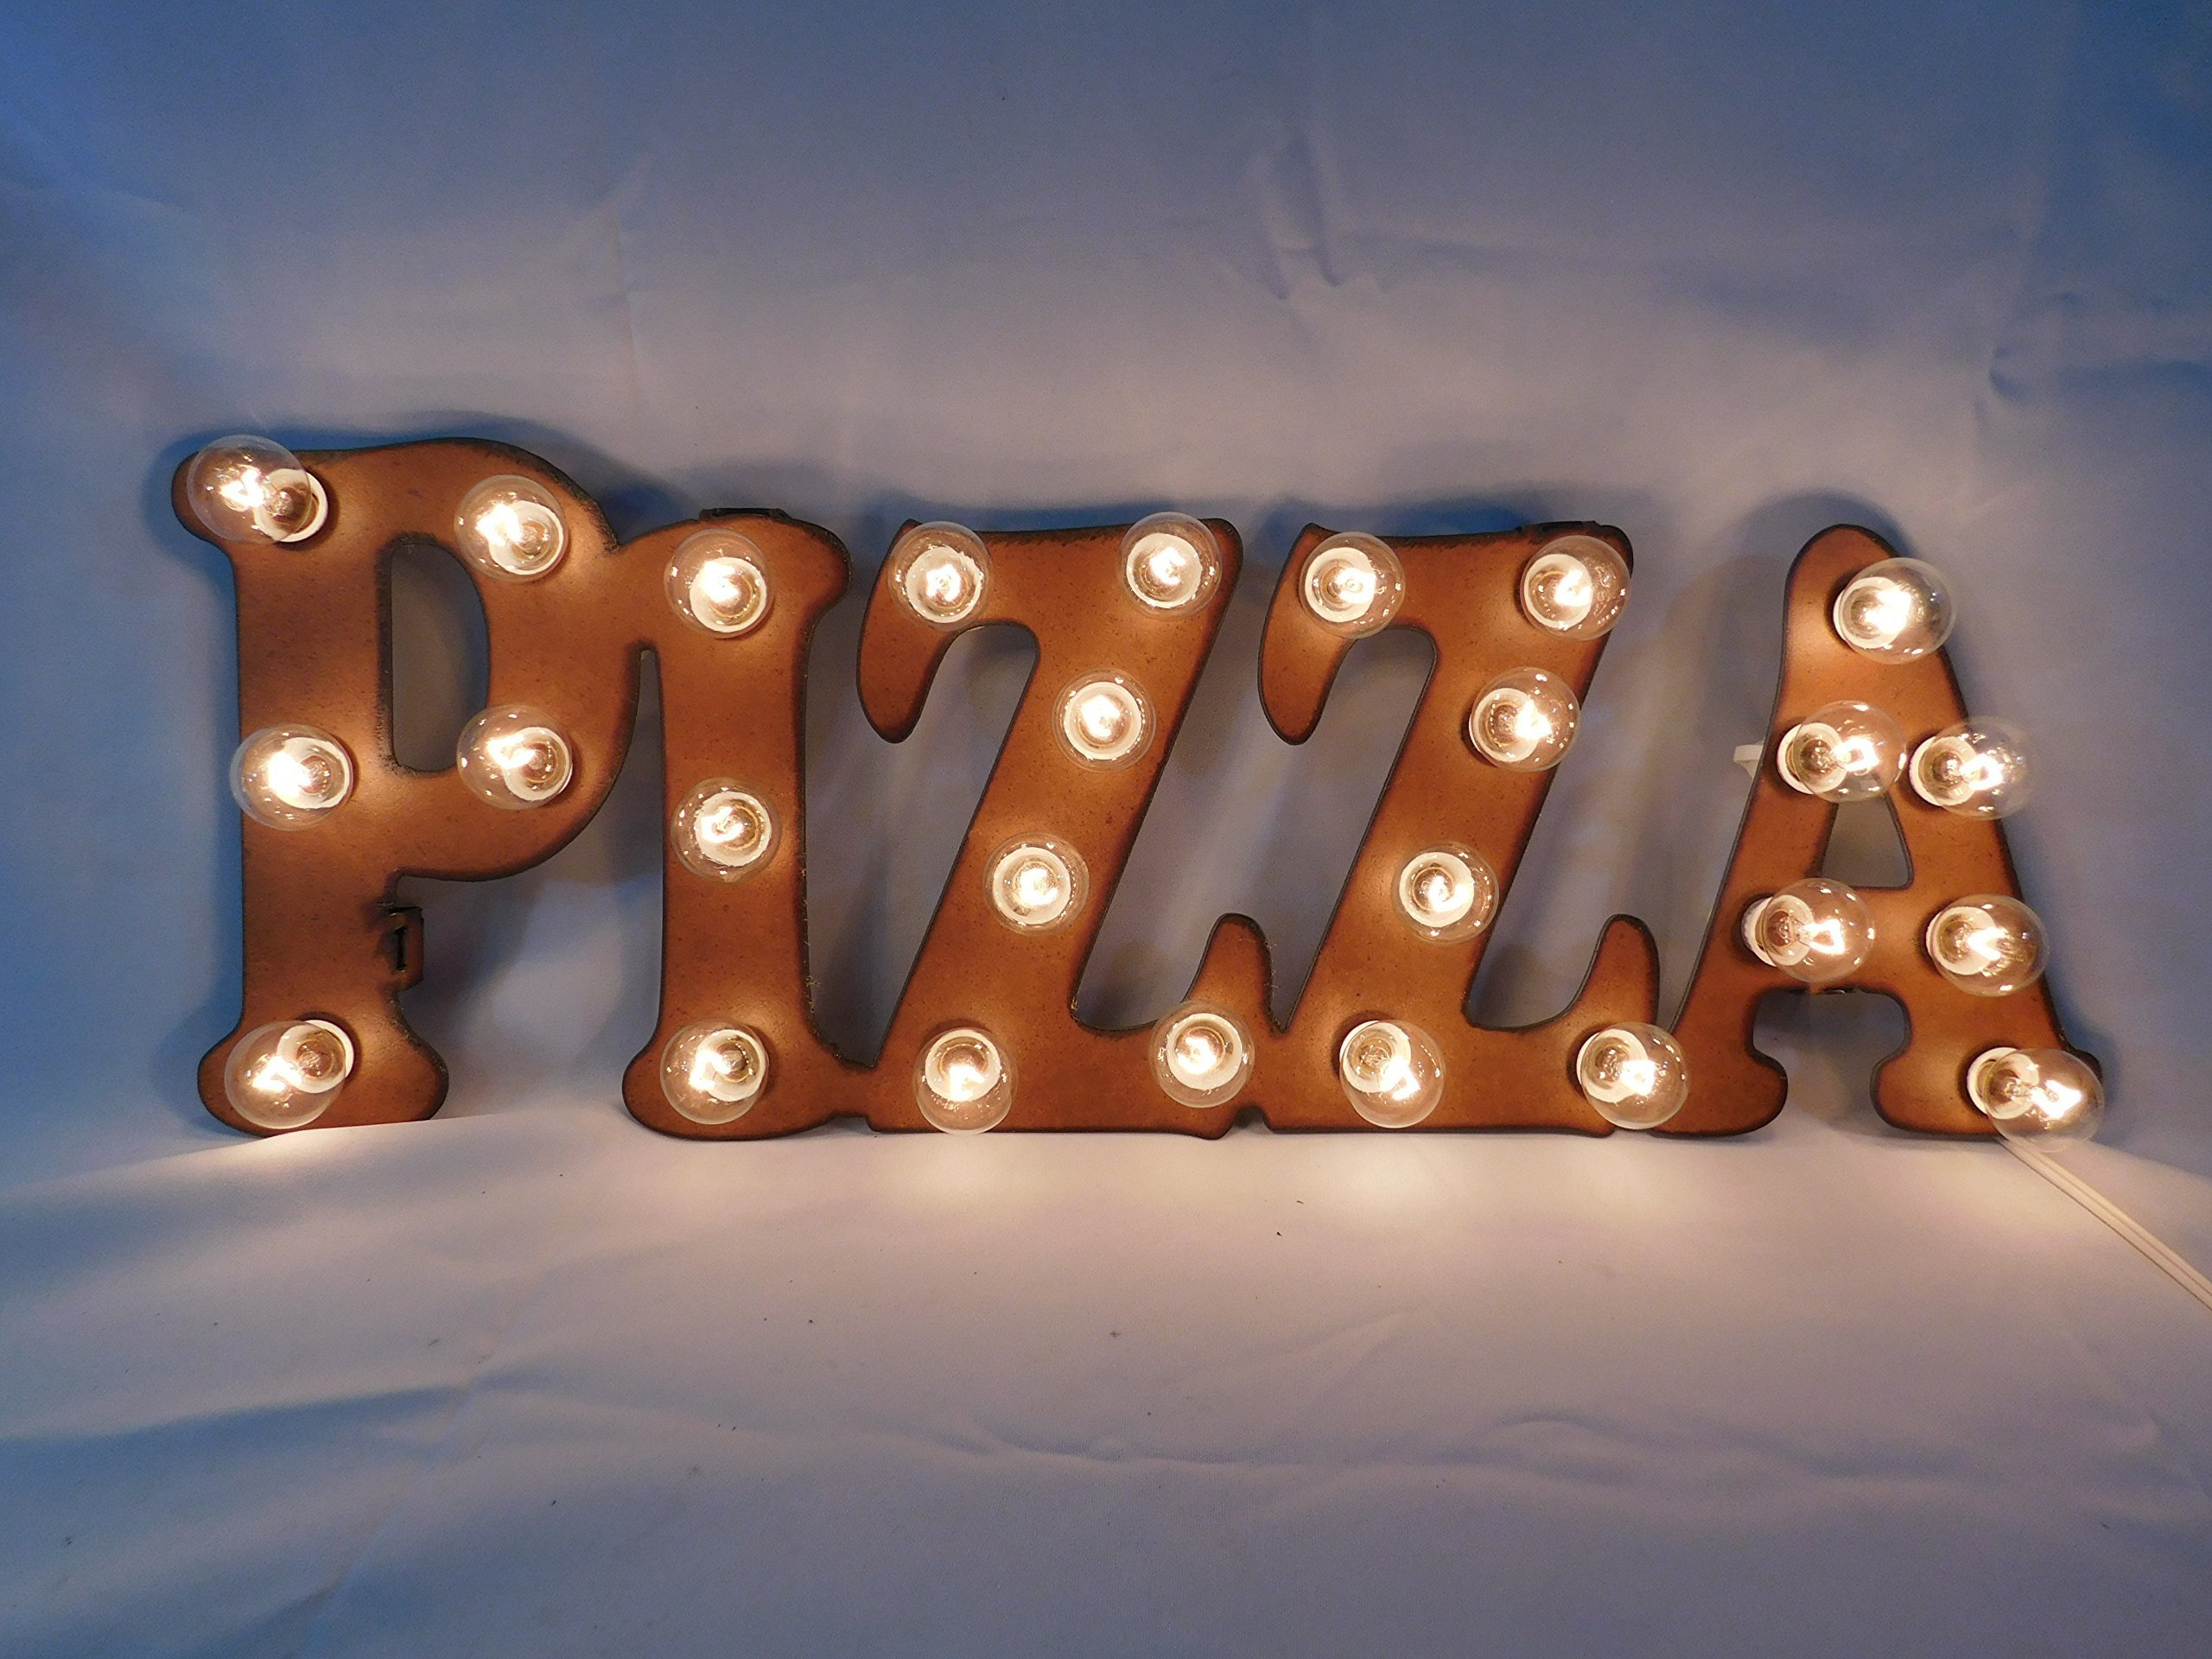 Pizza marquee vintage inspired rusty rustic lighted sign